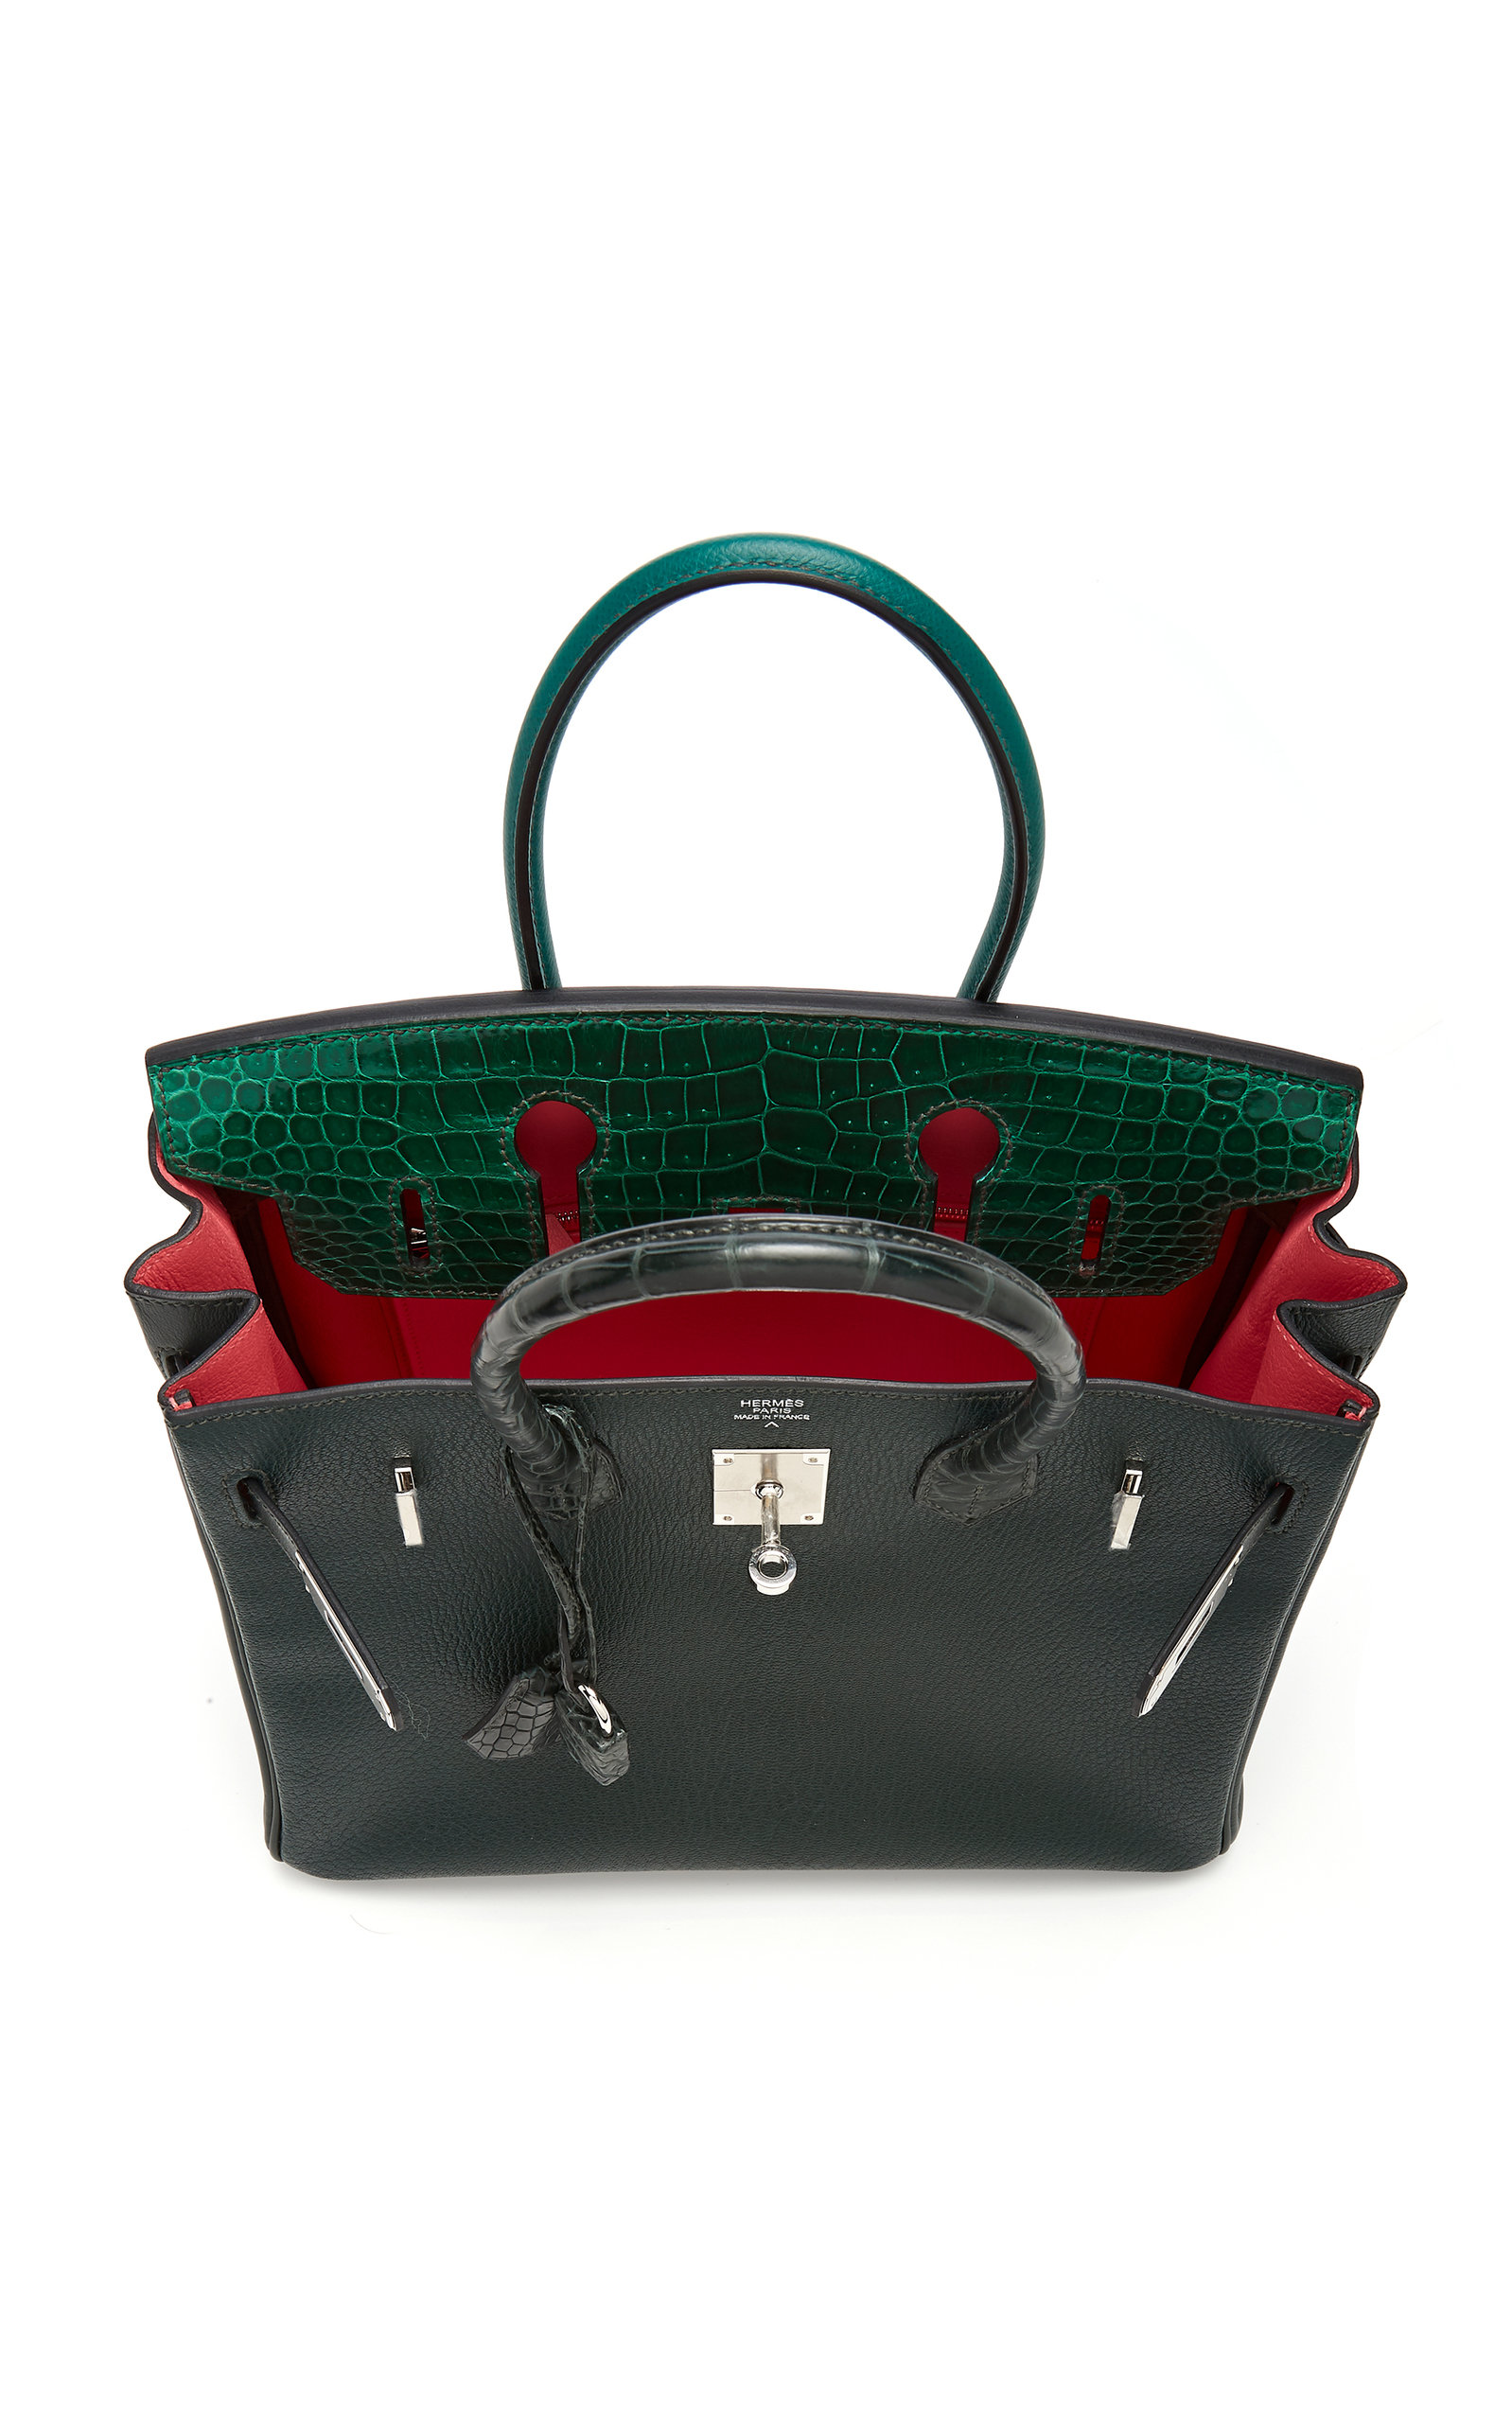 7073929ece Hermès 30cm Shades of Green Porosus Crocodile and Leather Limited ...